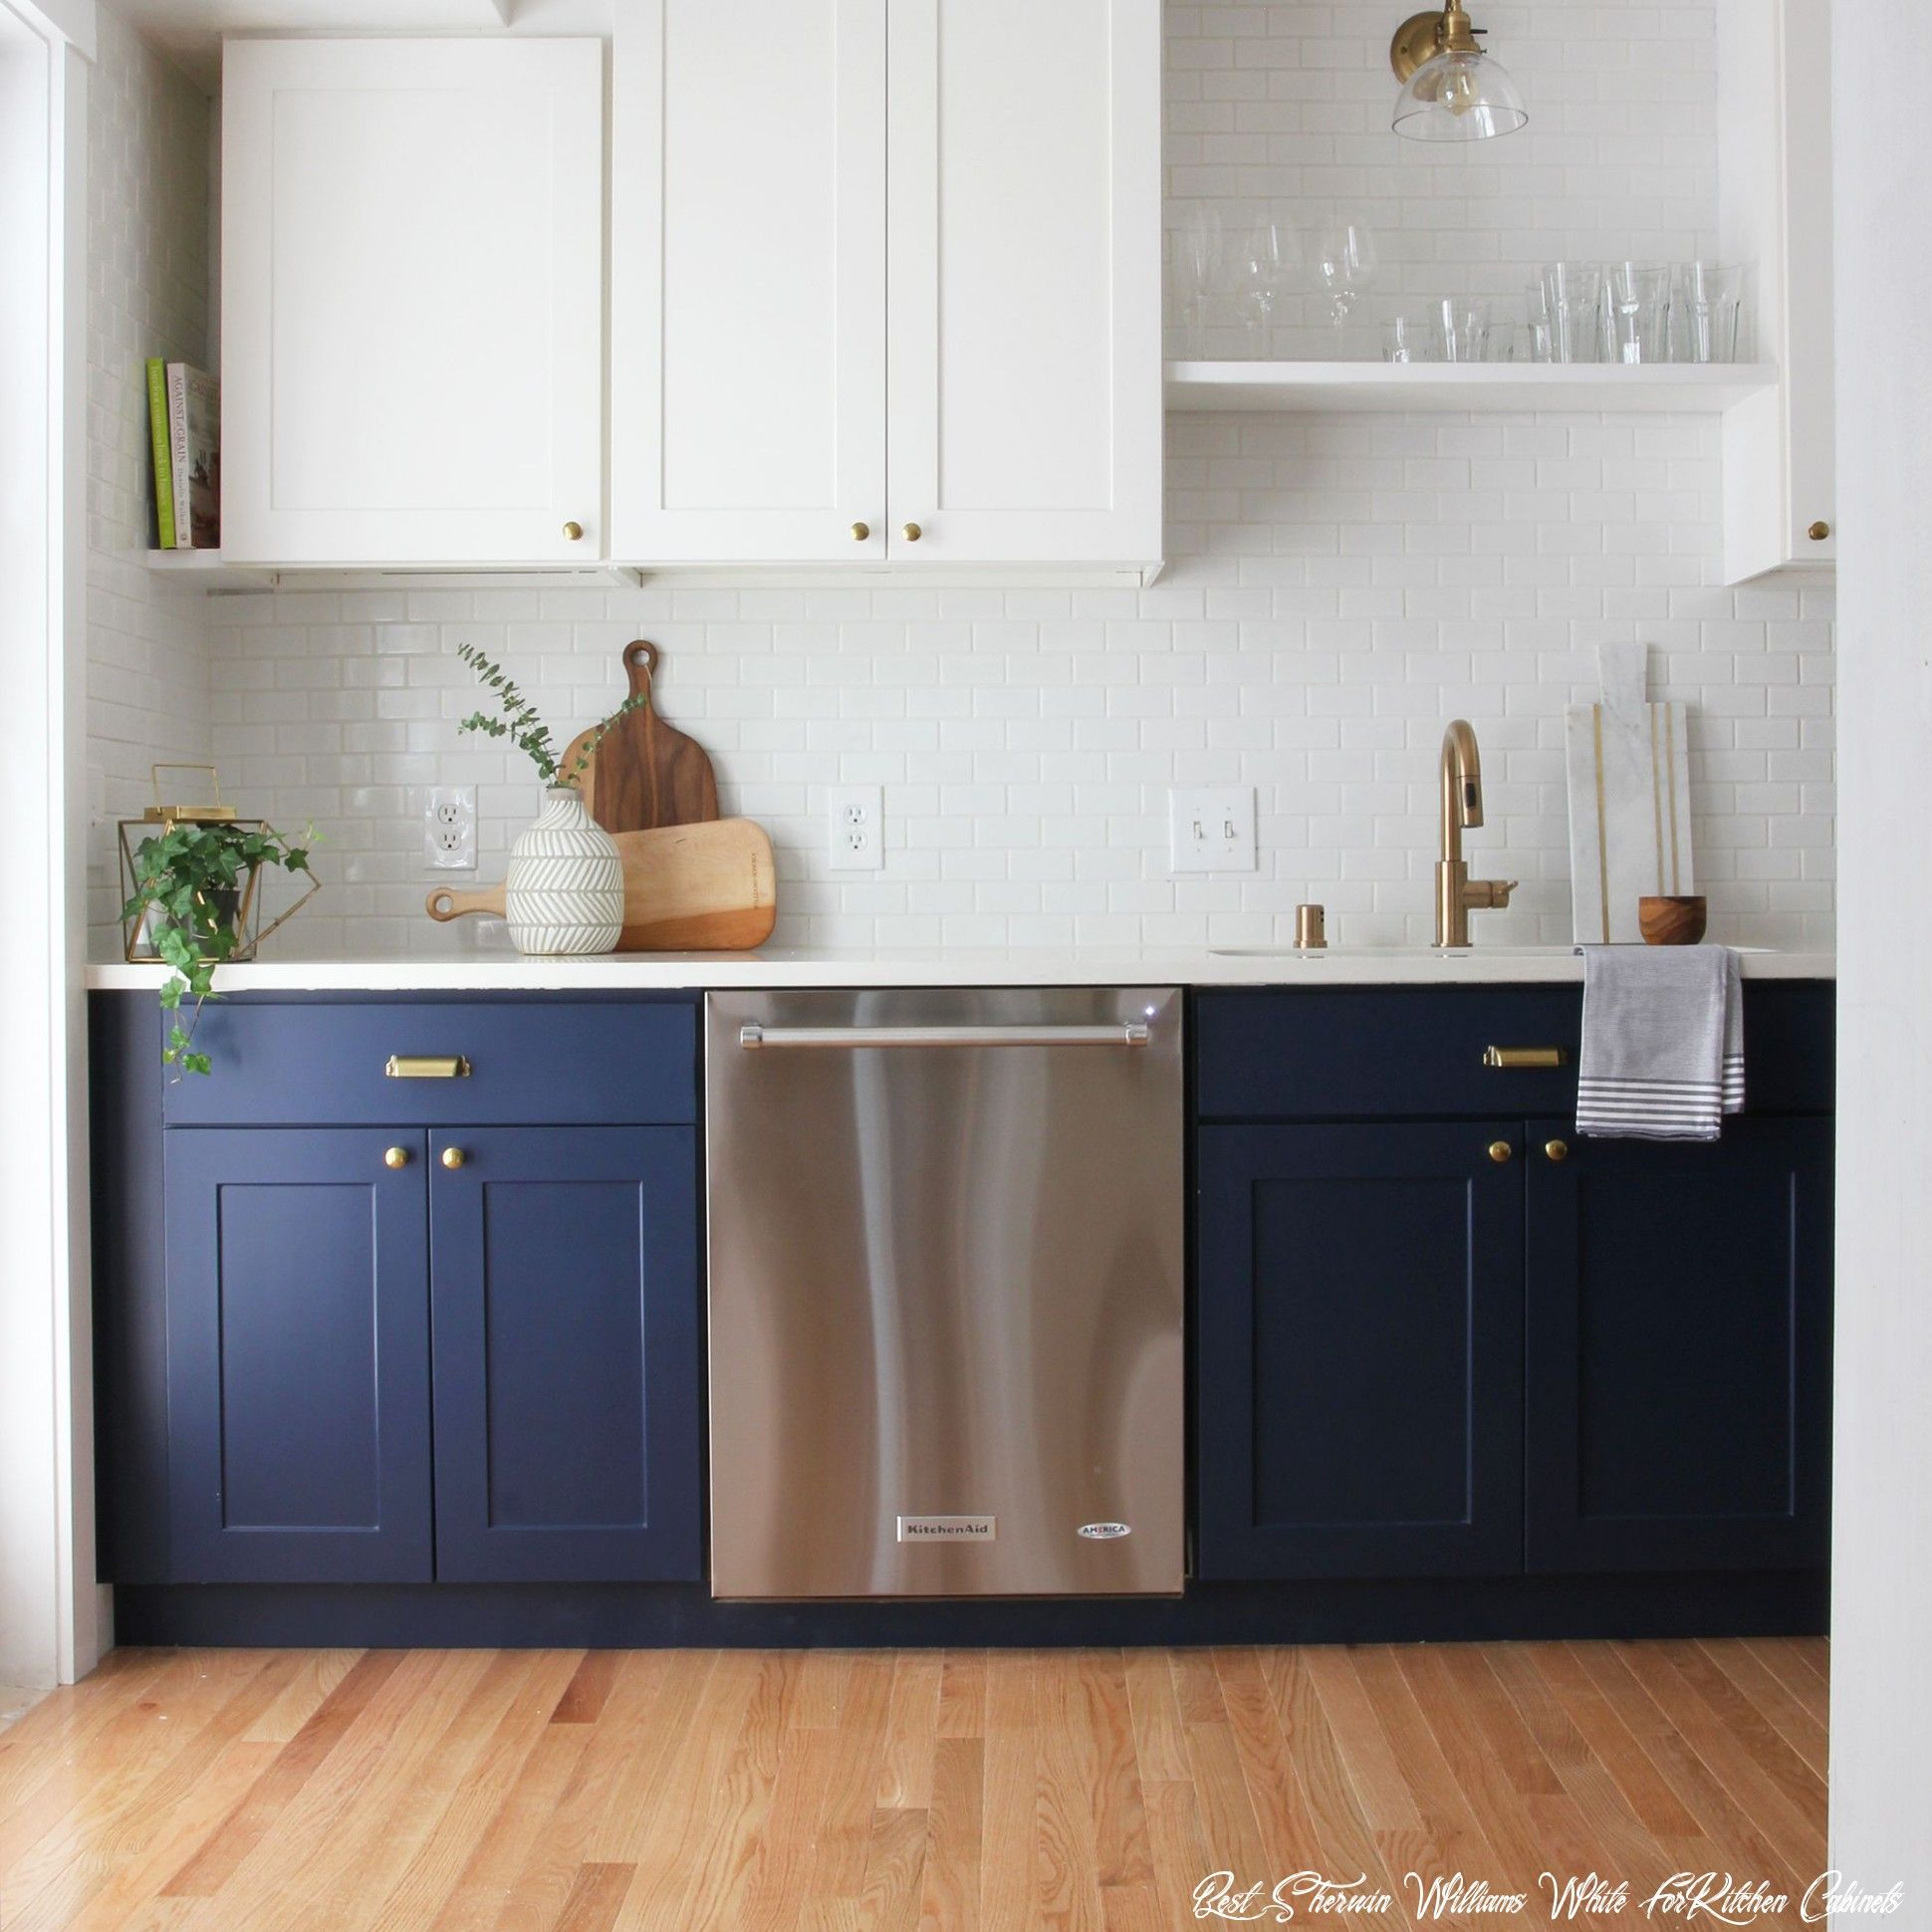 12 Best Sherwin Williams White For Kitchen in